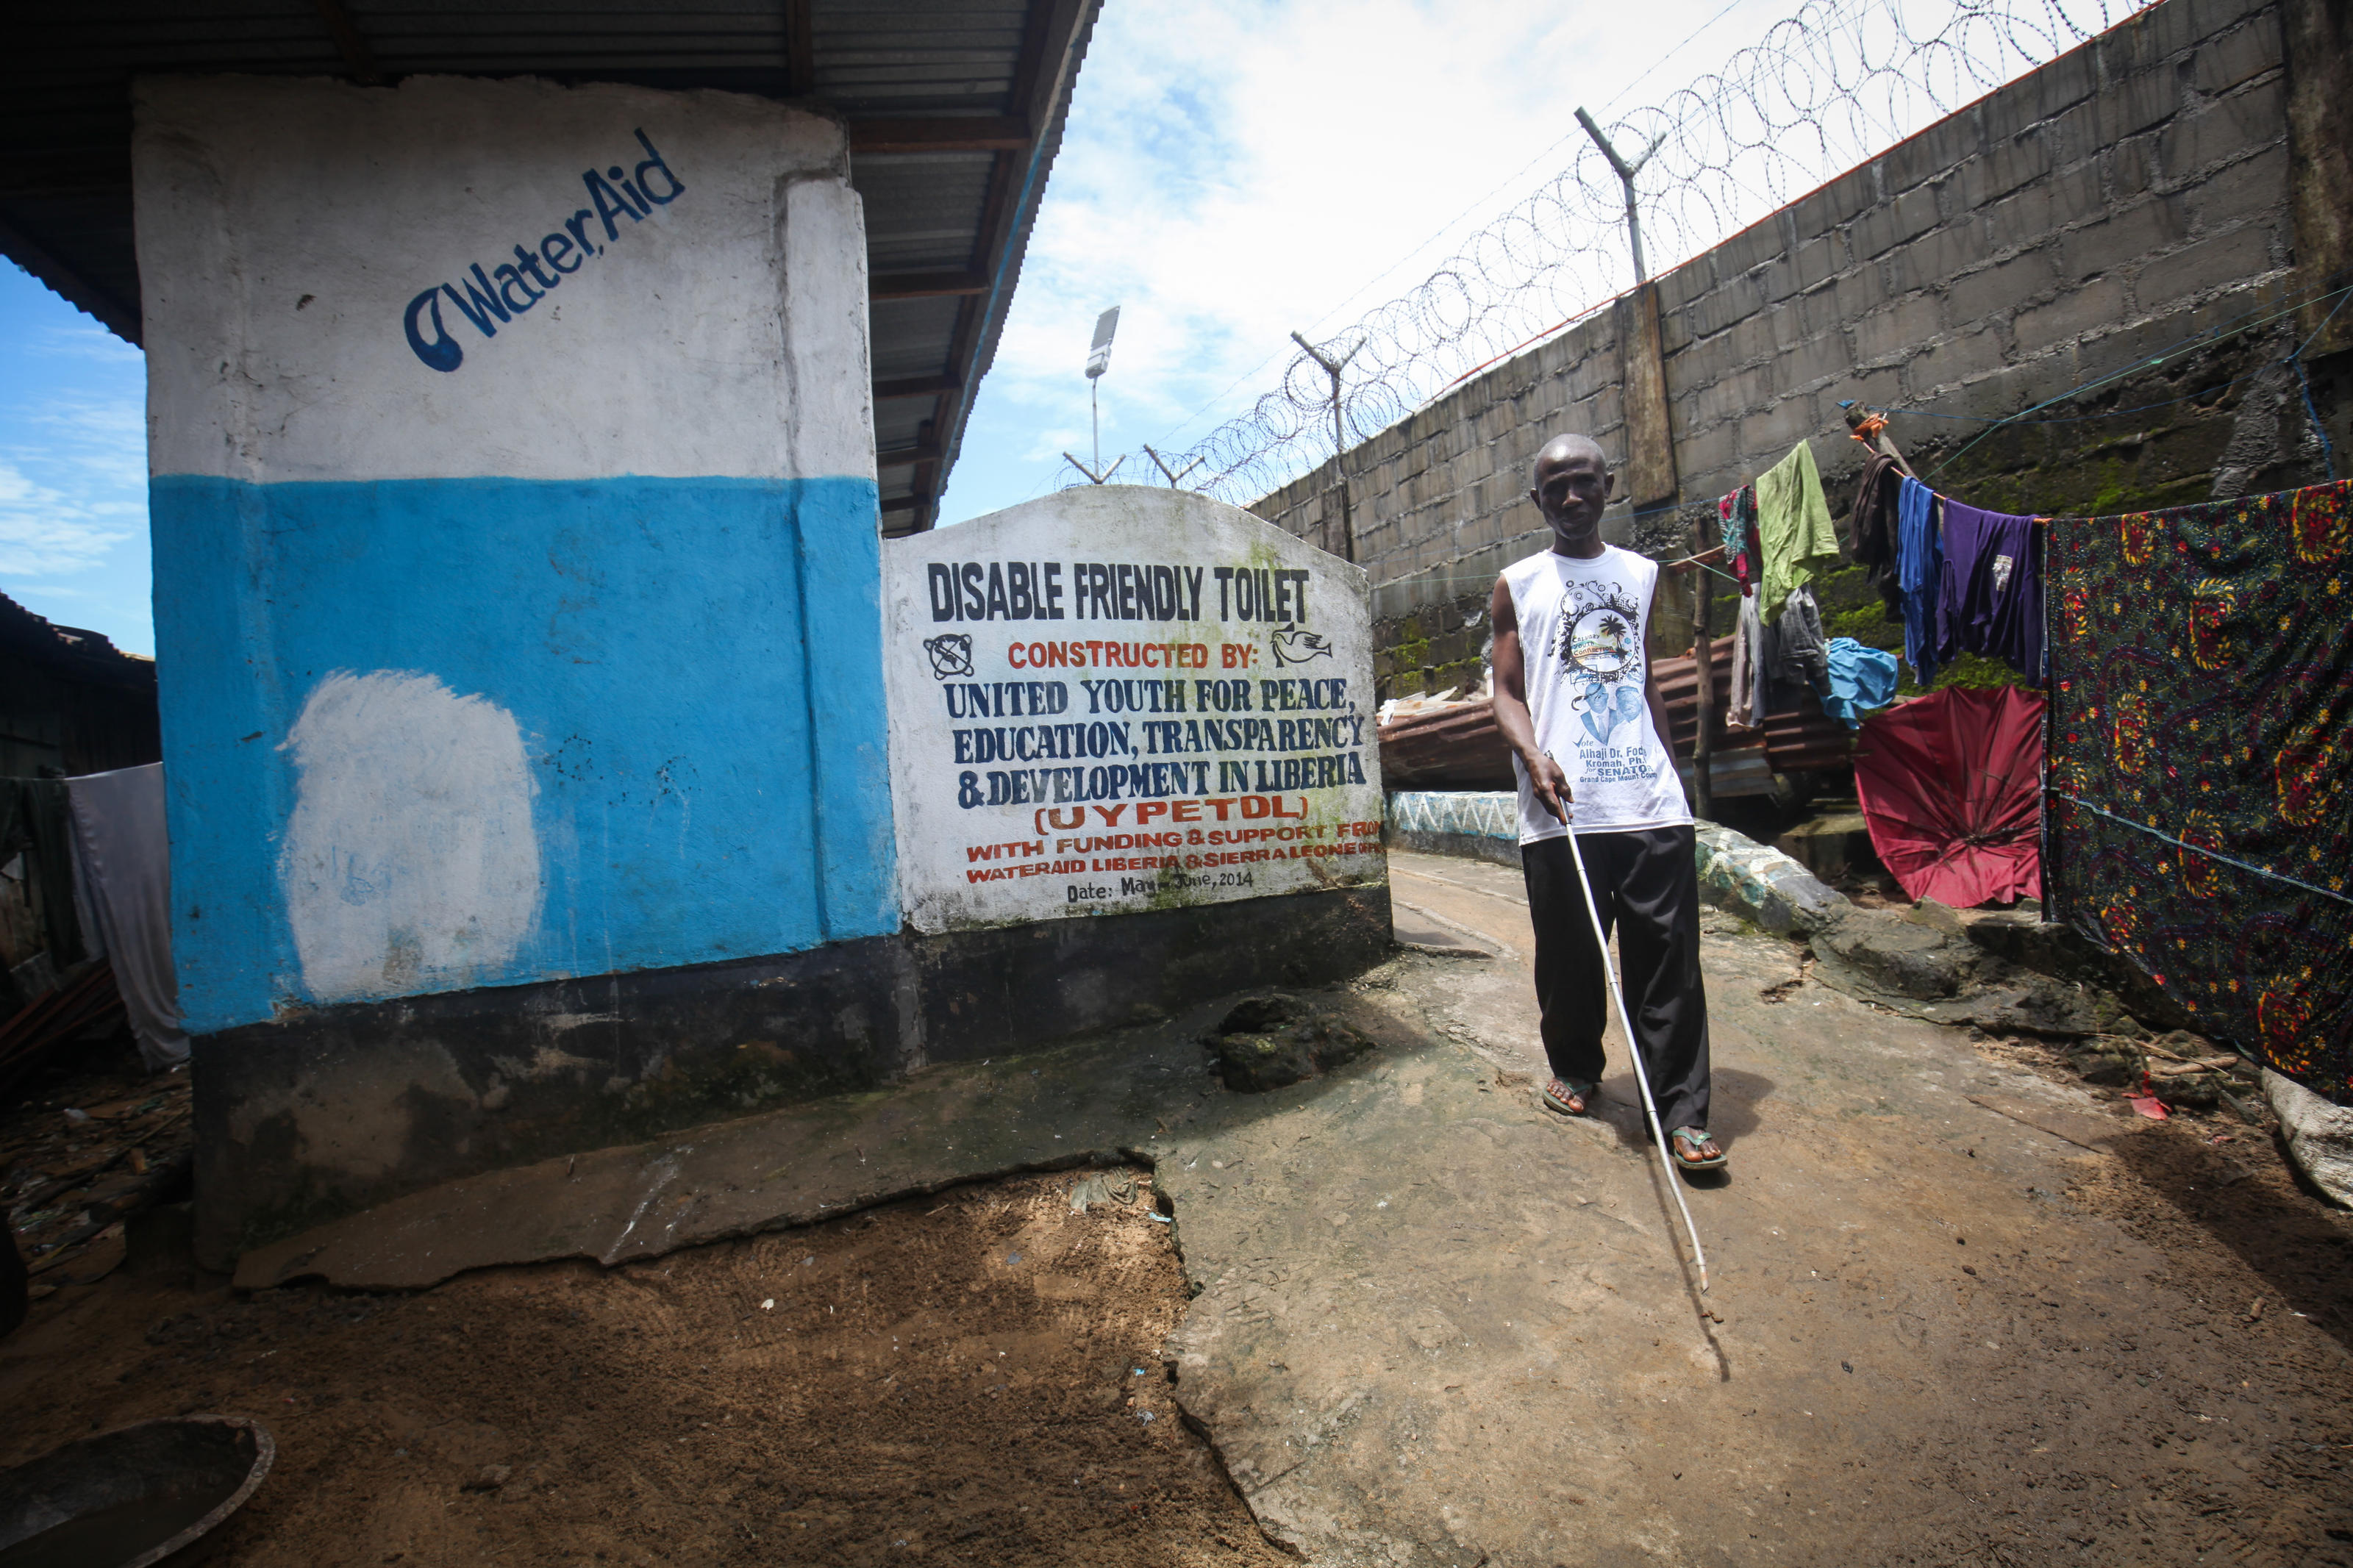 Johnson walks out of the disabled-friendly toilet at 17th Street, Sinkor, Monrovia, Liberia